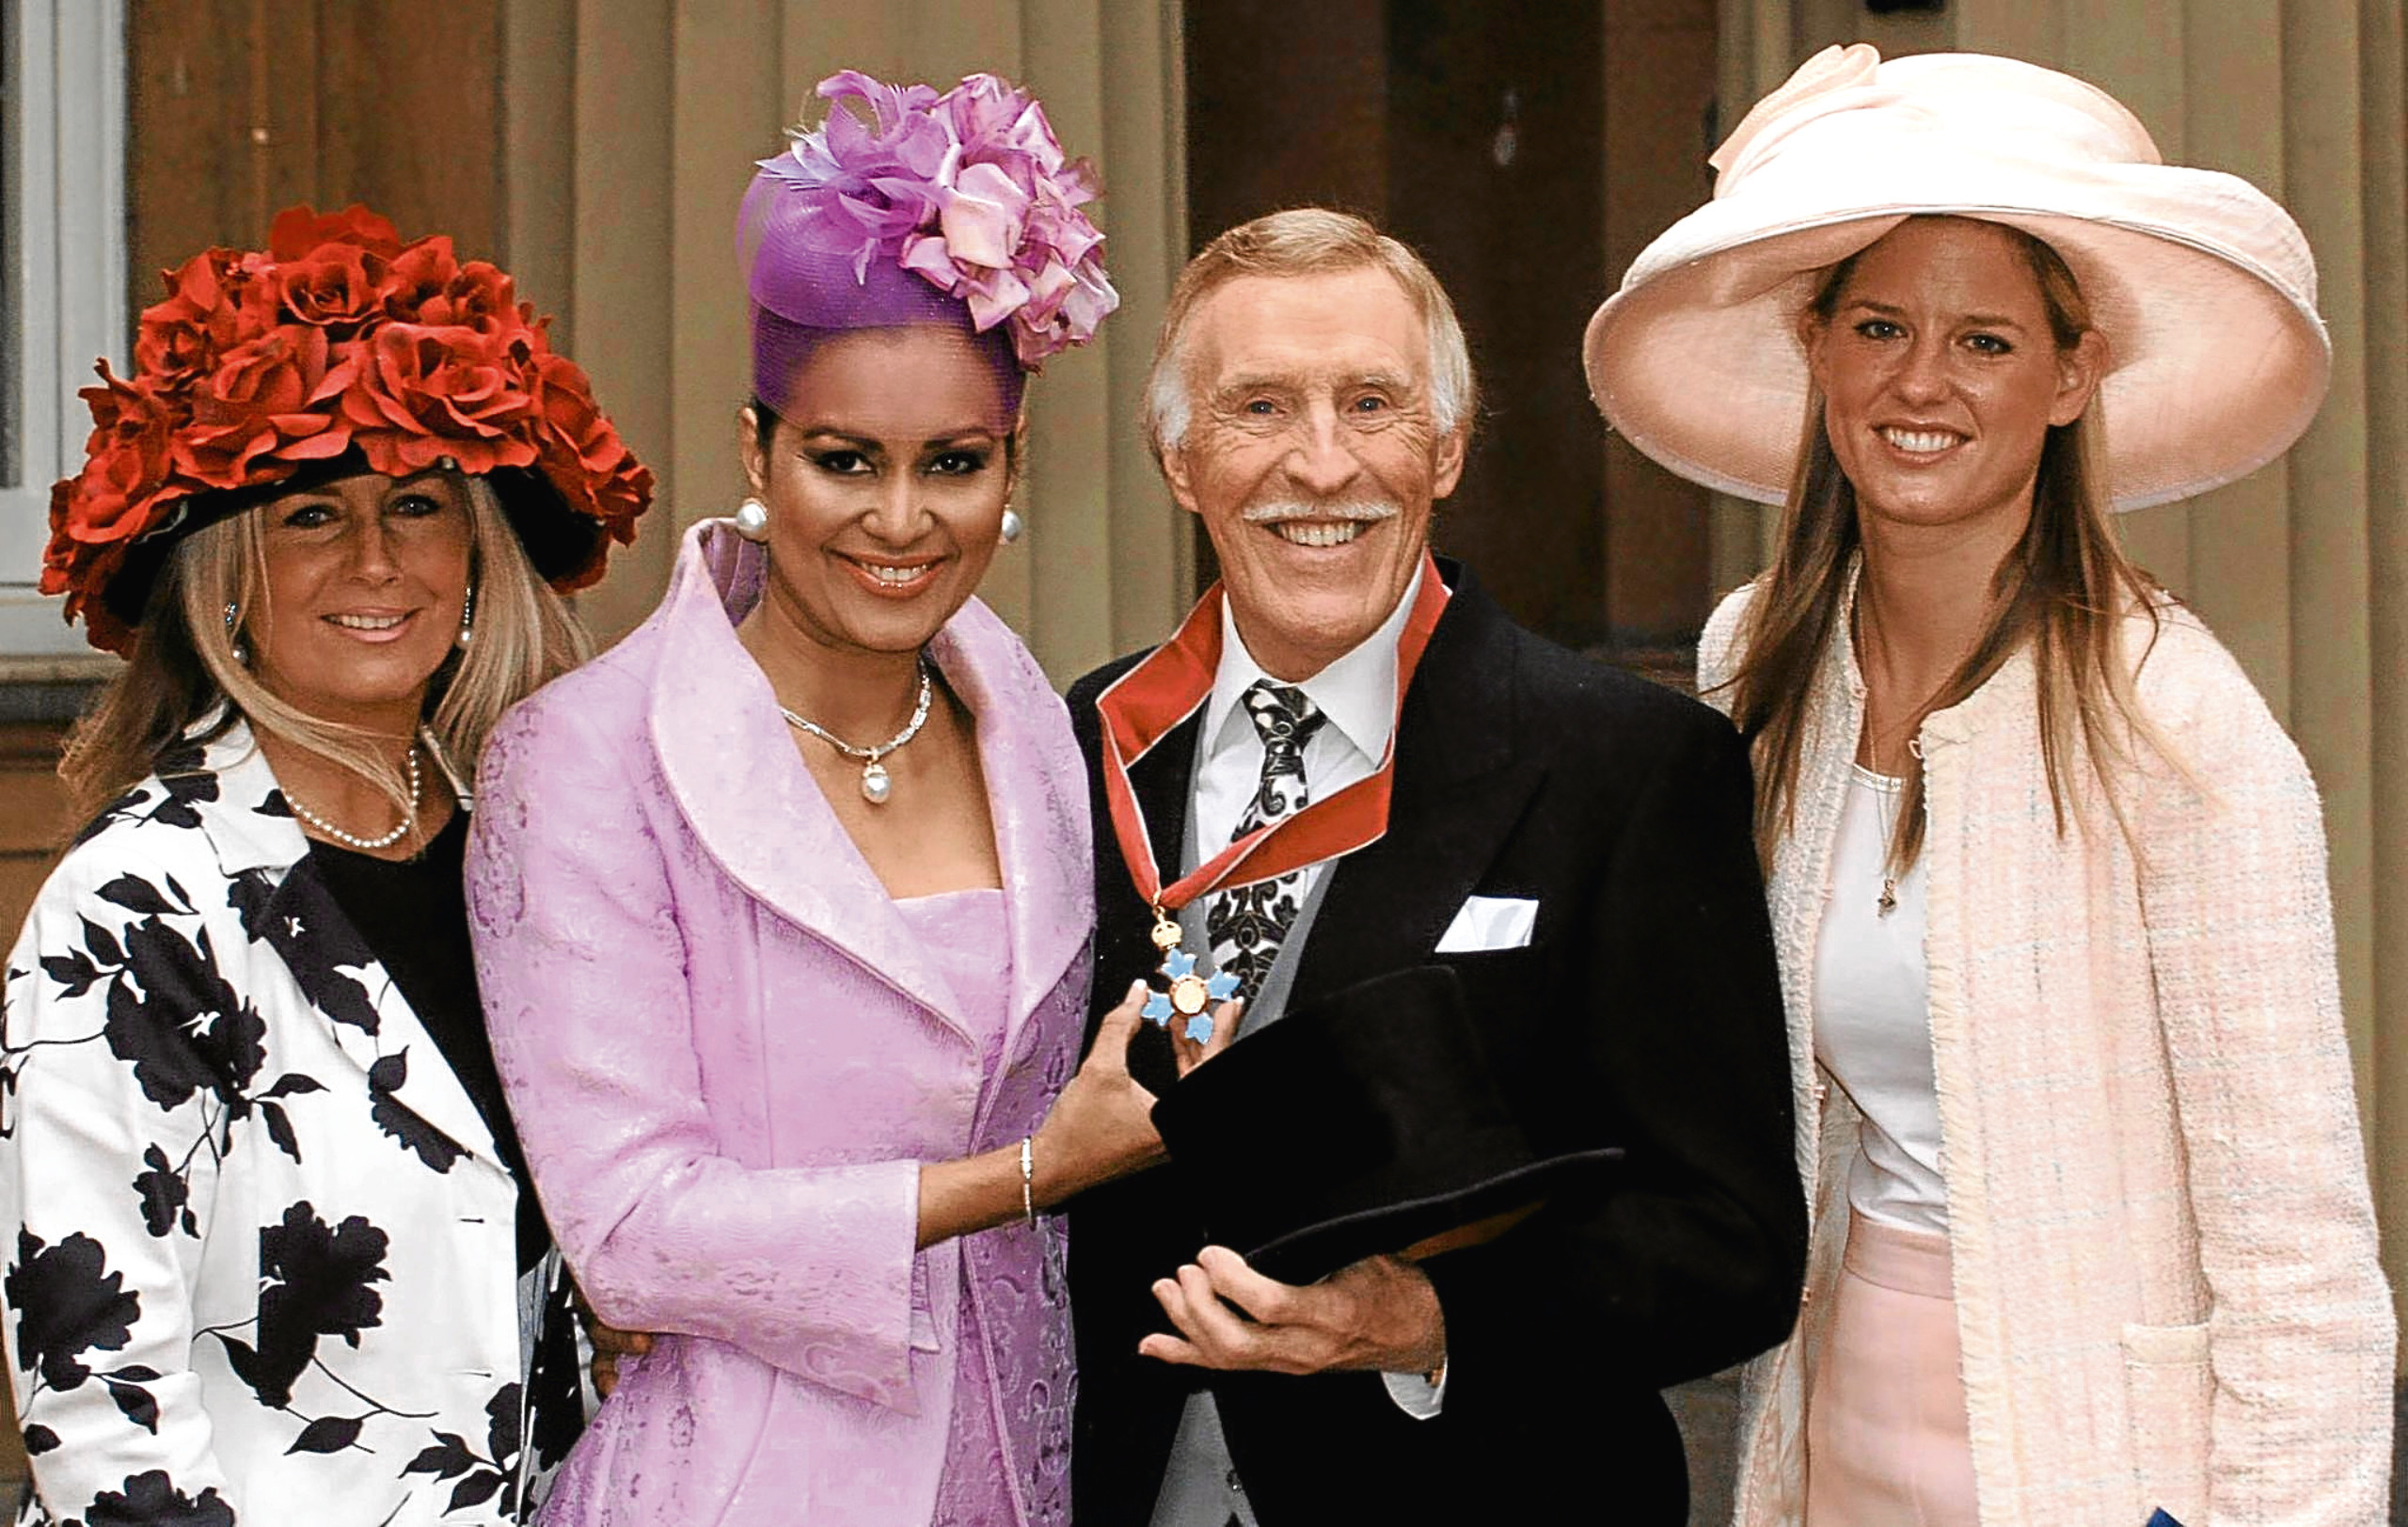 Bruce Forsyth with his wife Wilnelia and daughters Julie Purdie (left) and Louisa Monro (right) at Buckingham Palace